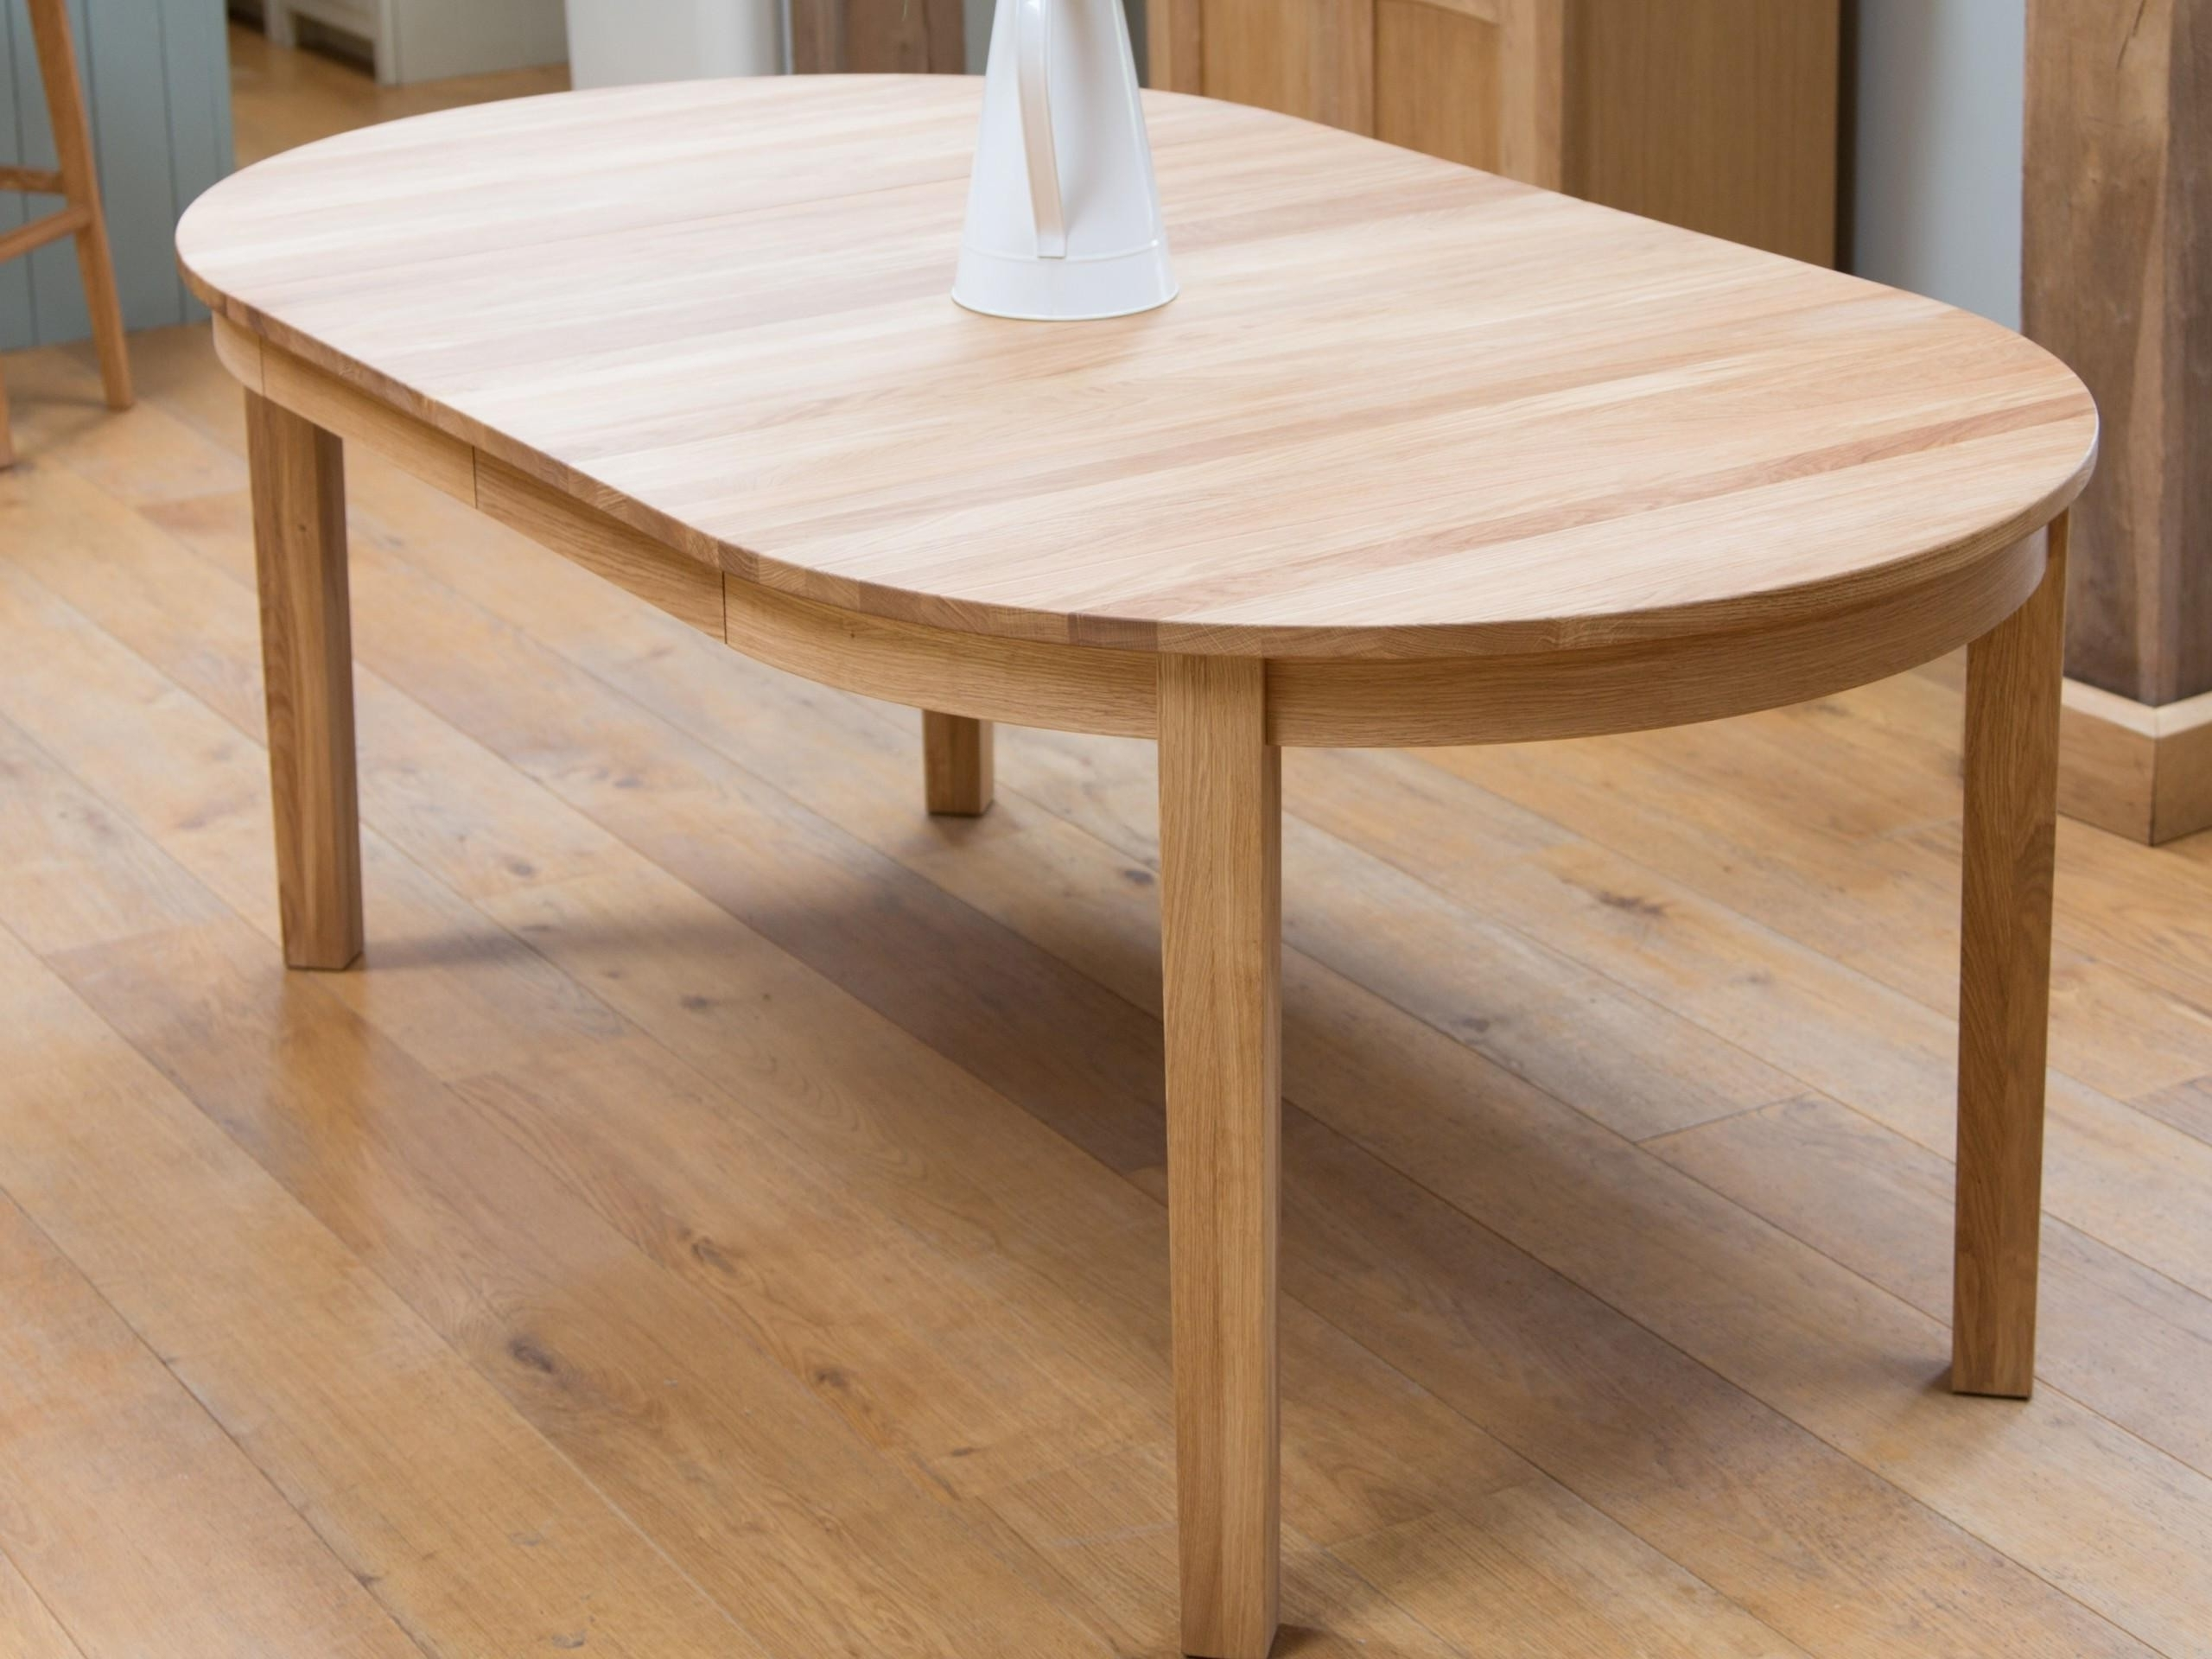 2018 White Square Extending Dining Tables Regarding Extendable Dining Tables For Small Spaces Best Of 79 Elegant Stocks (Gallery 19 of 25)